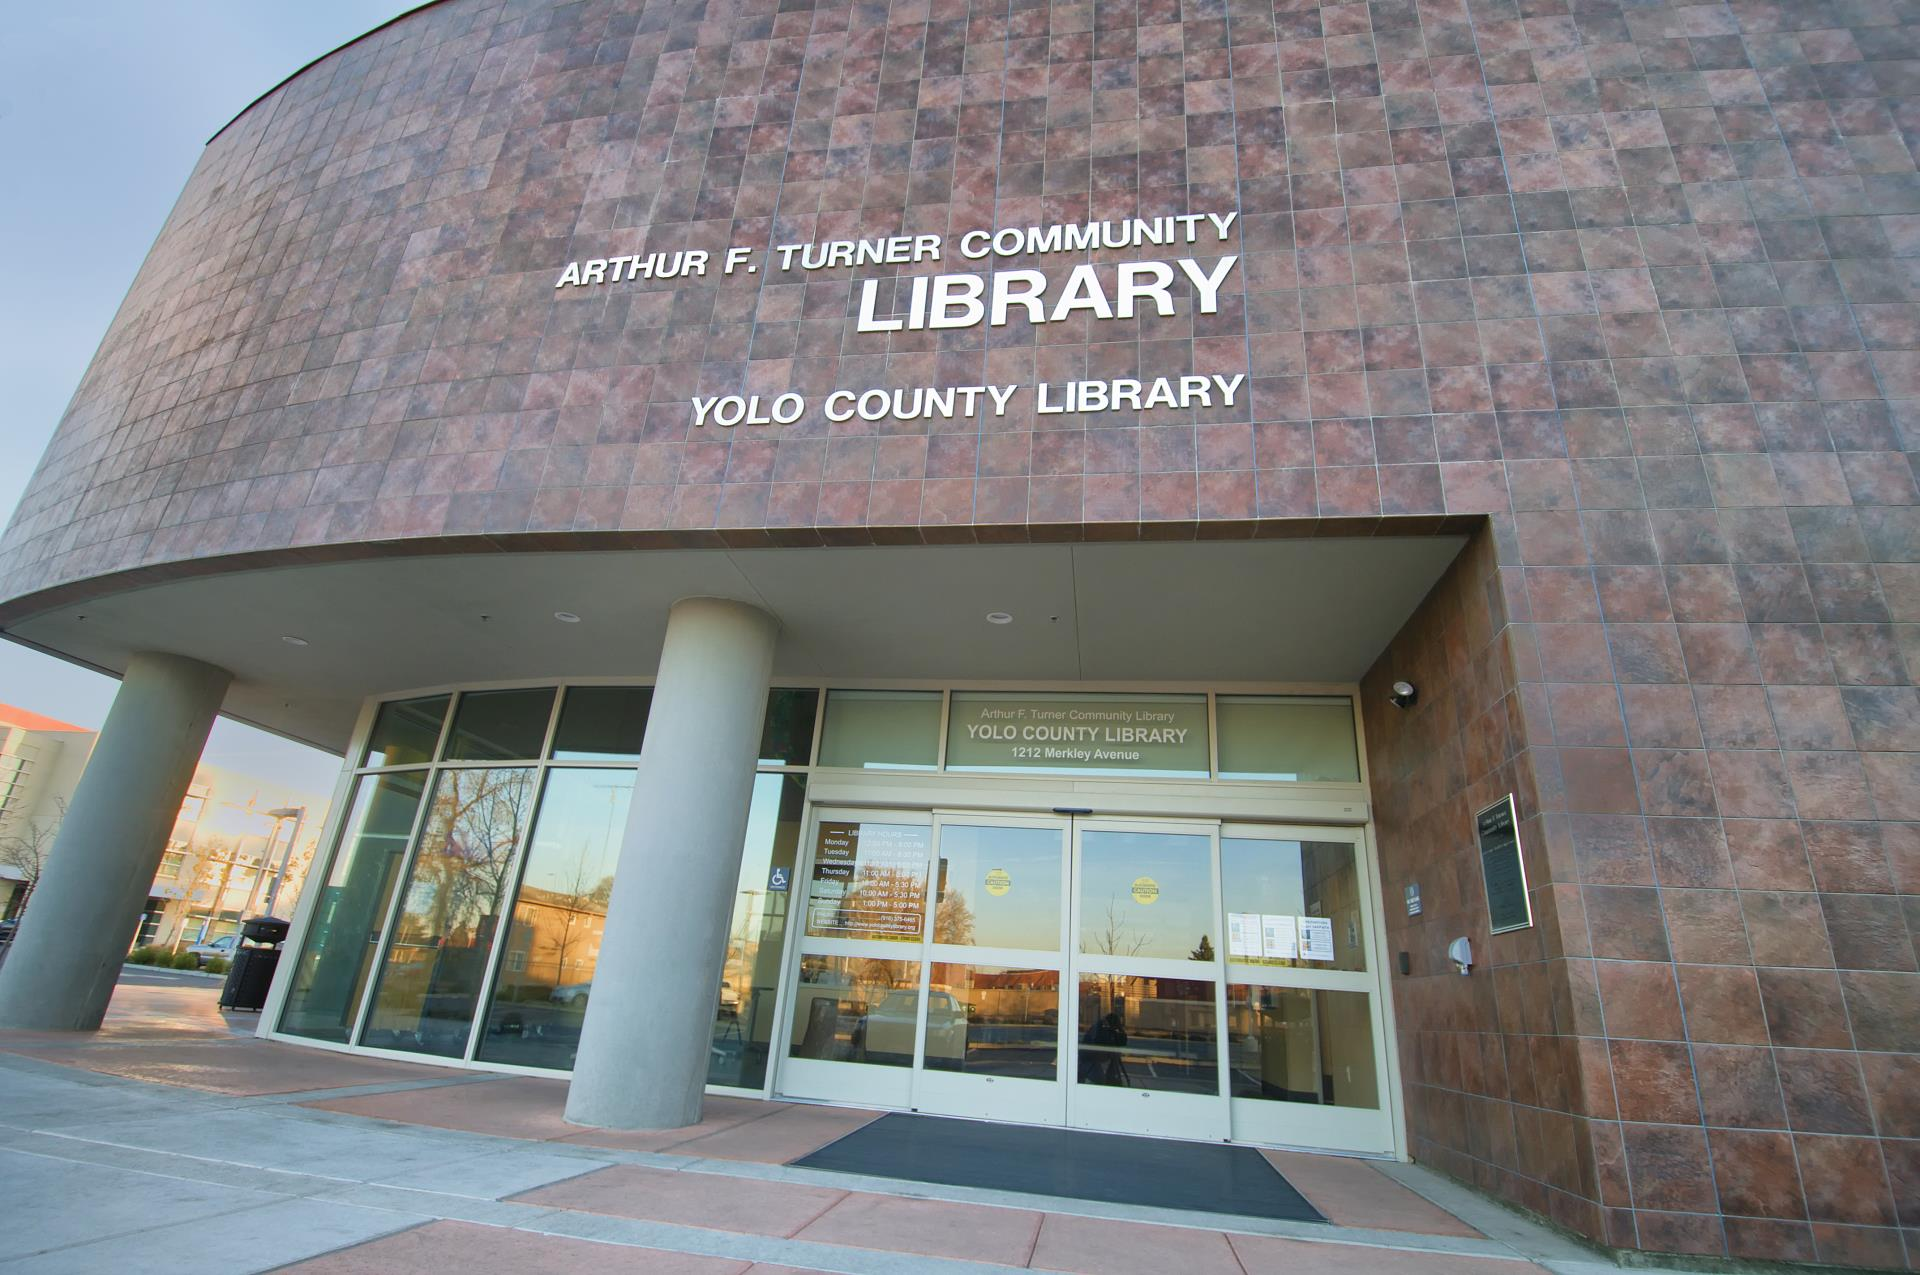 Arthur f turner community library